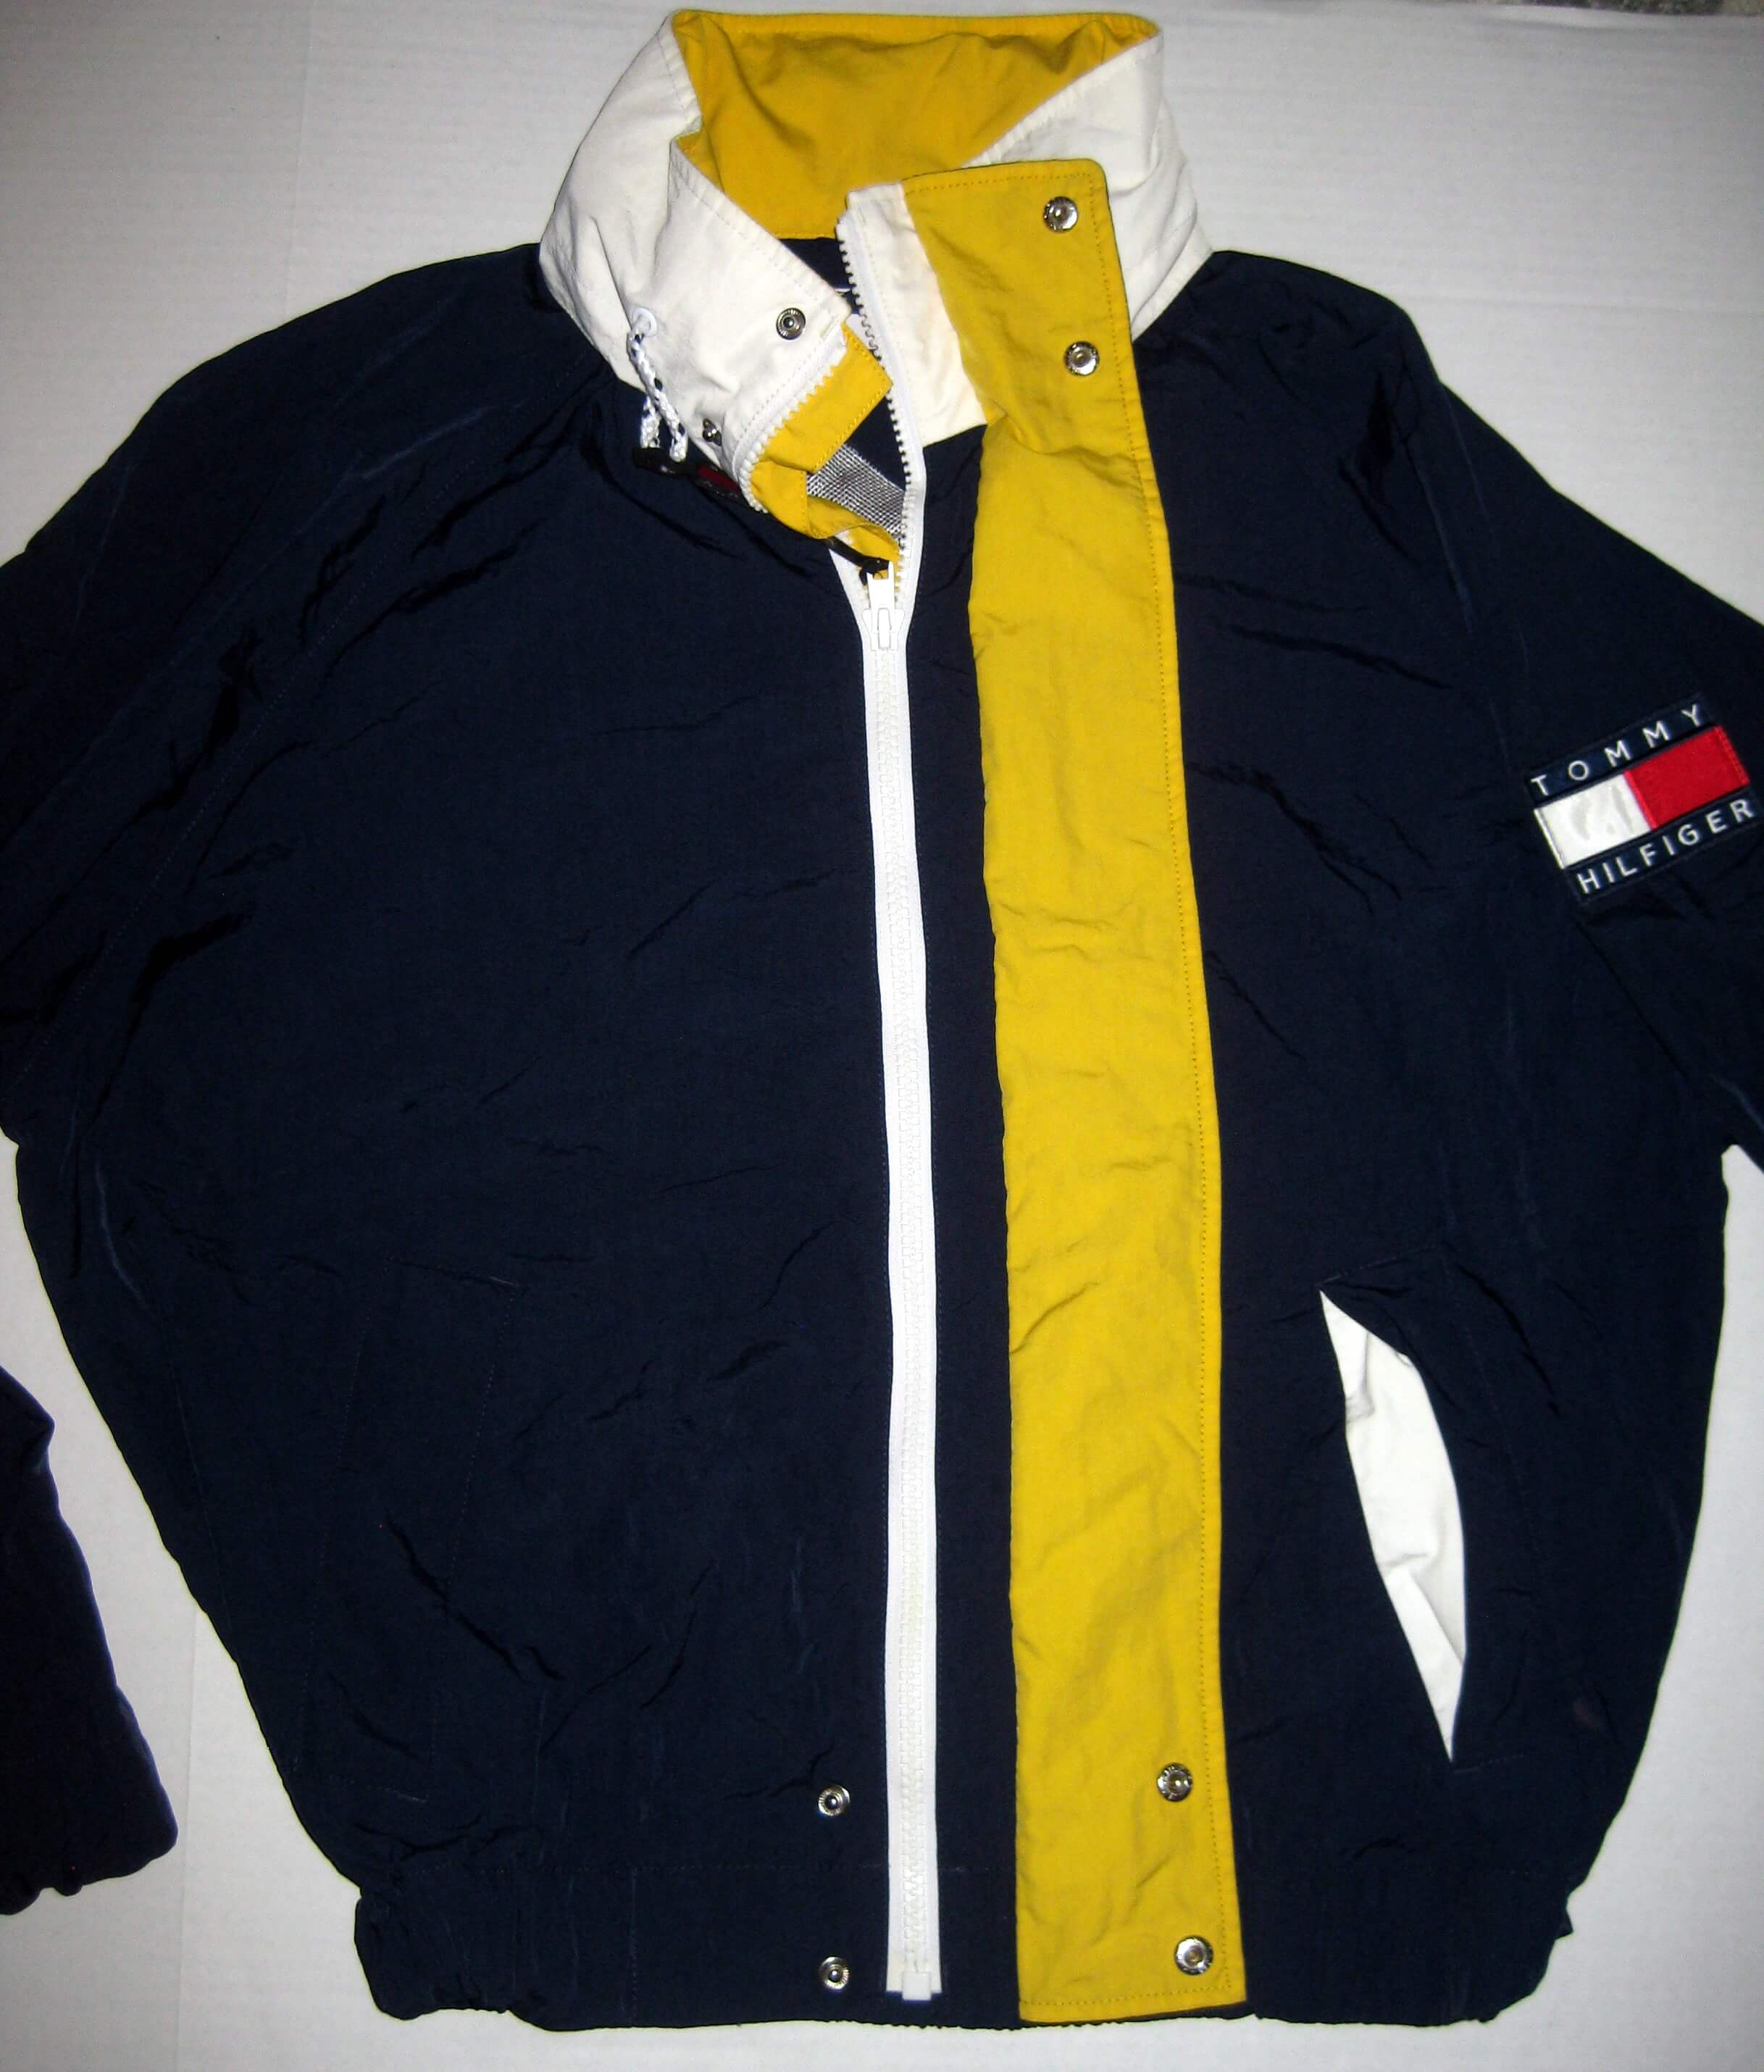 Tommy Hilfiger Ebay Clothing Series 3 Flipping A Dollar